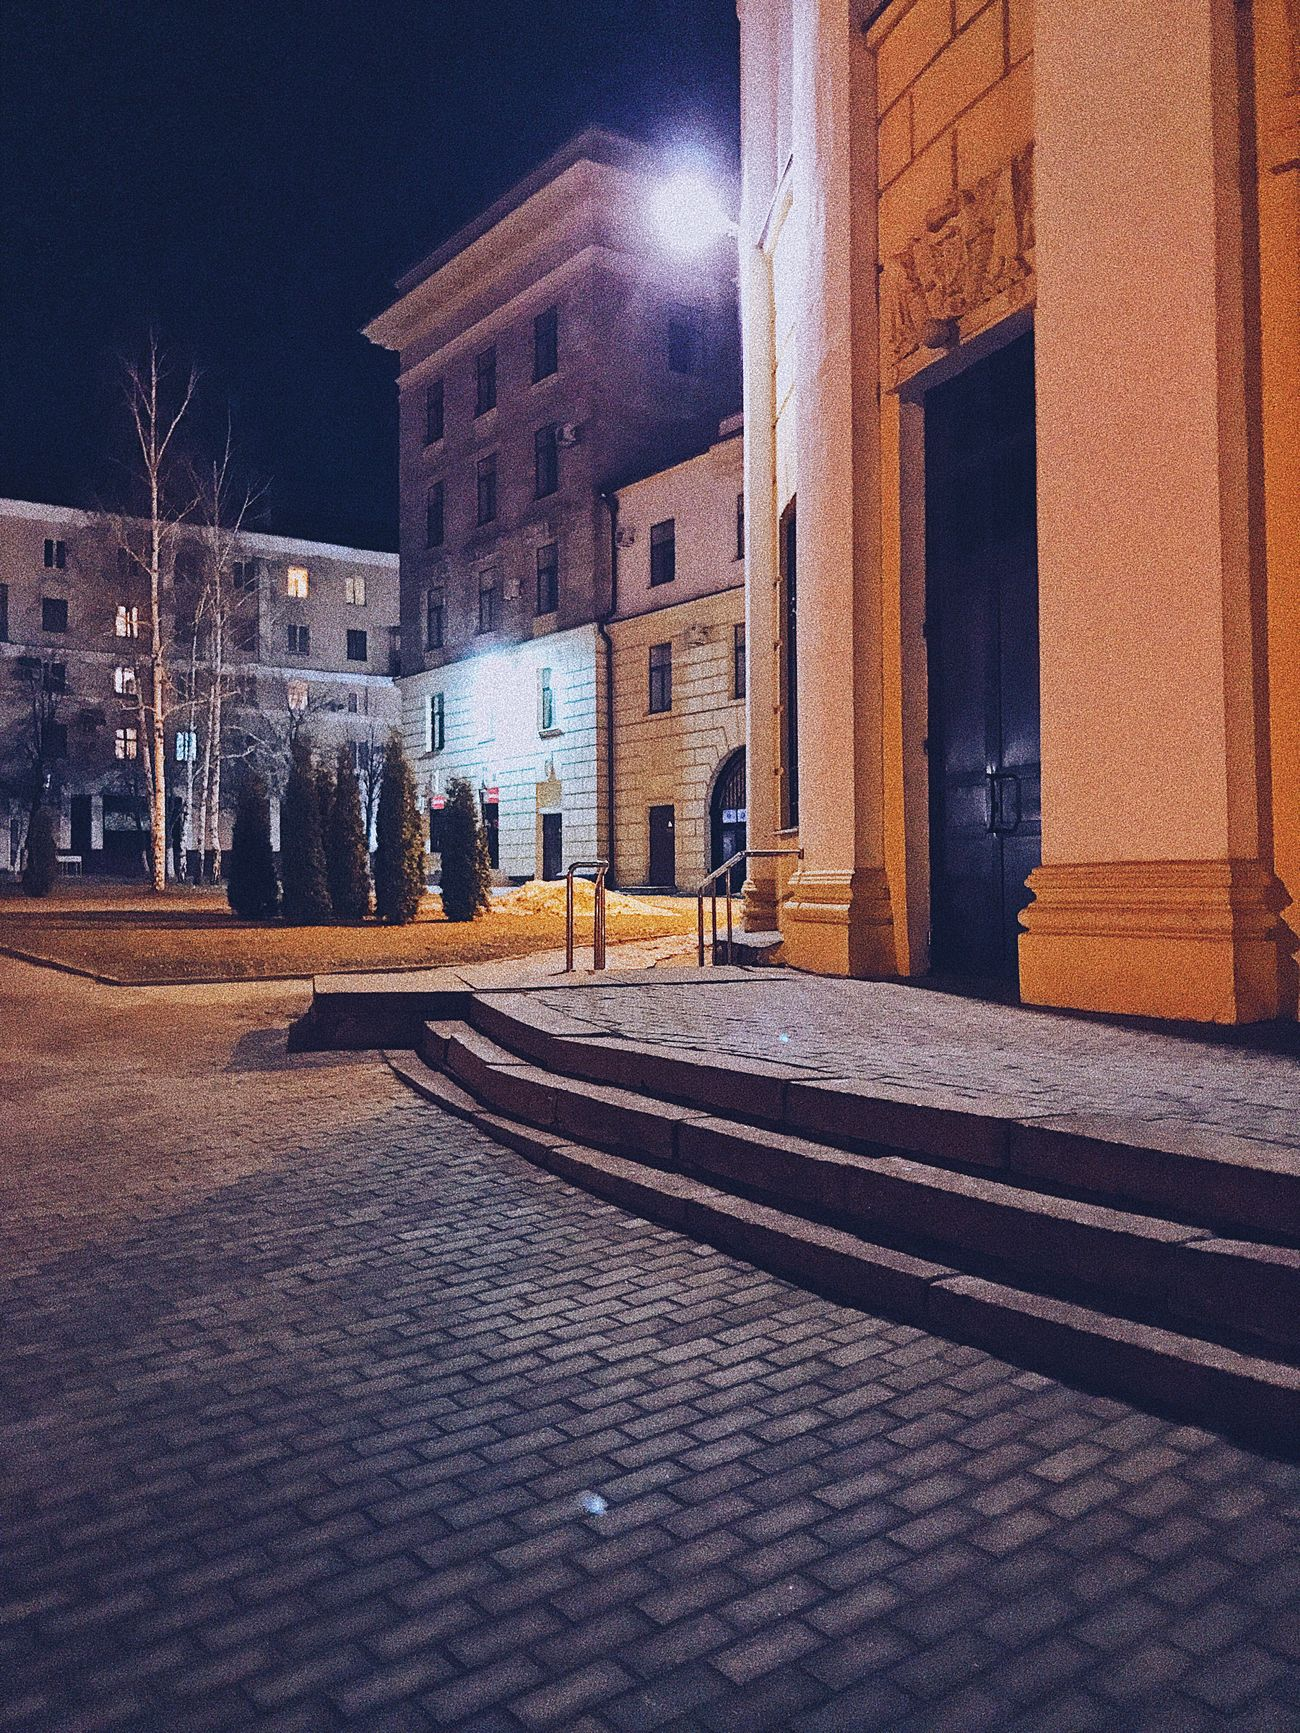 Building Exterior Architecture Built Structure Illuminated Night Outdoors City No People Lipetsk липецк